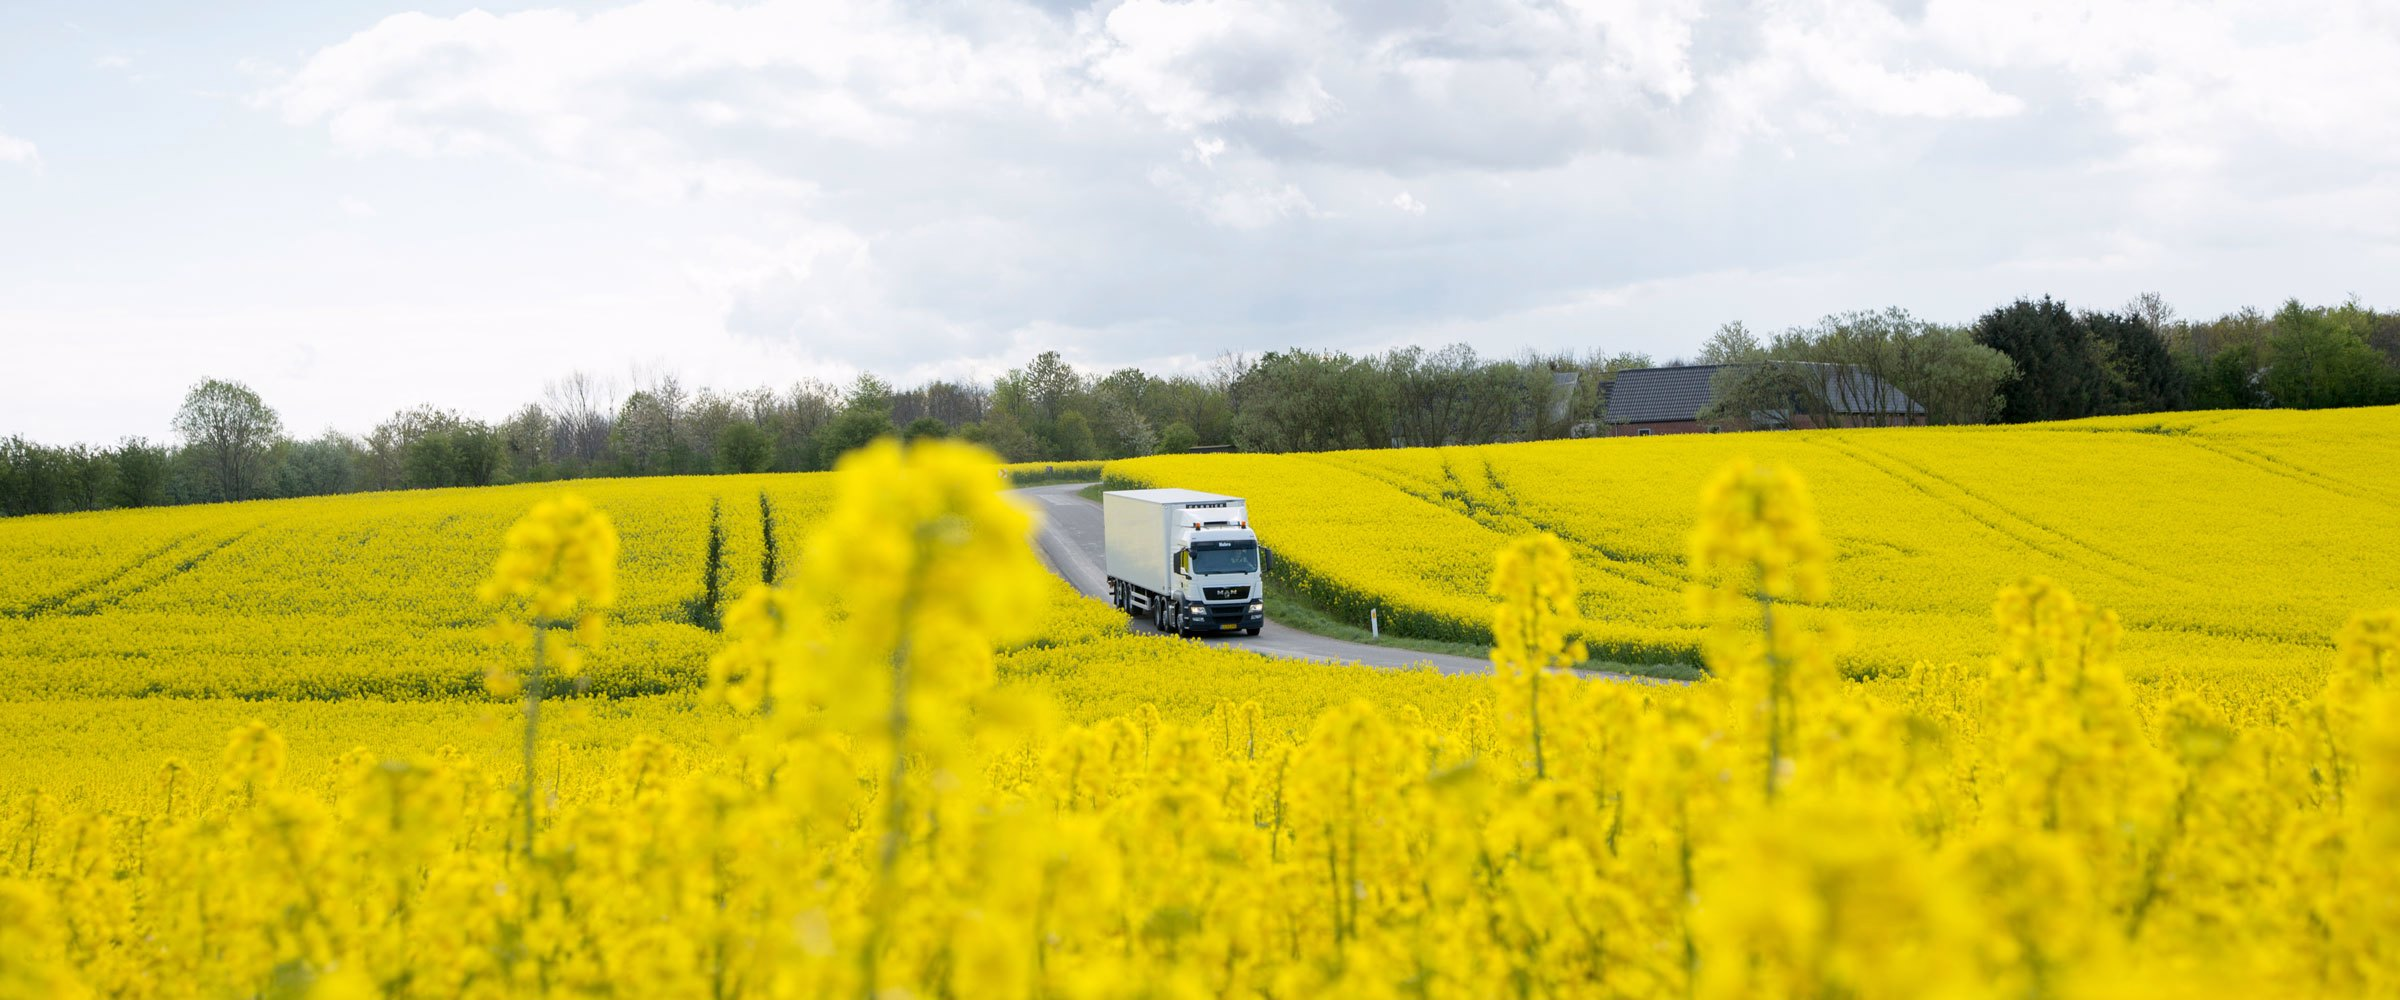 A truck driving through fields of yellow flowers